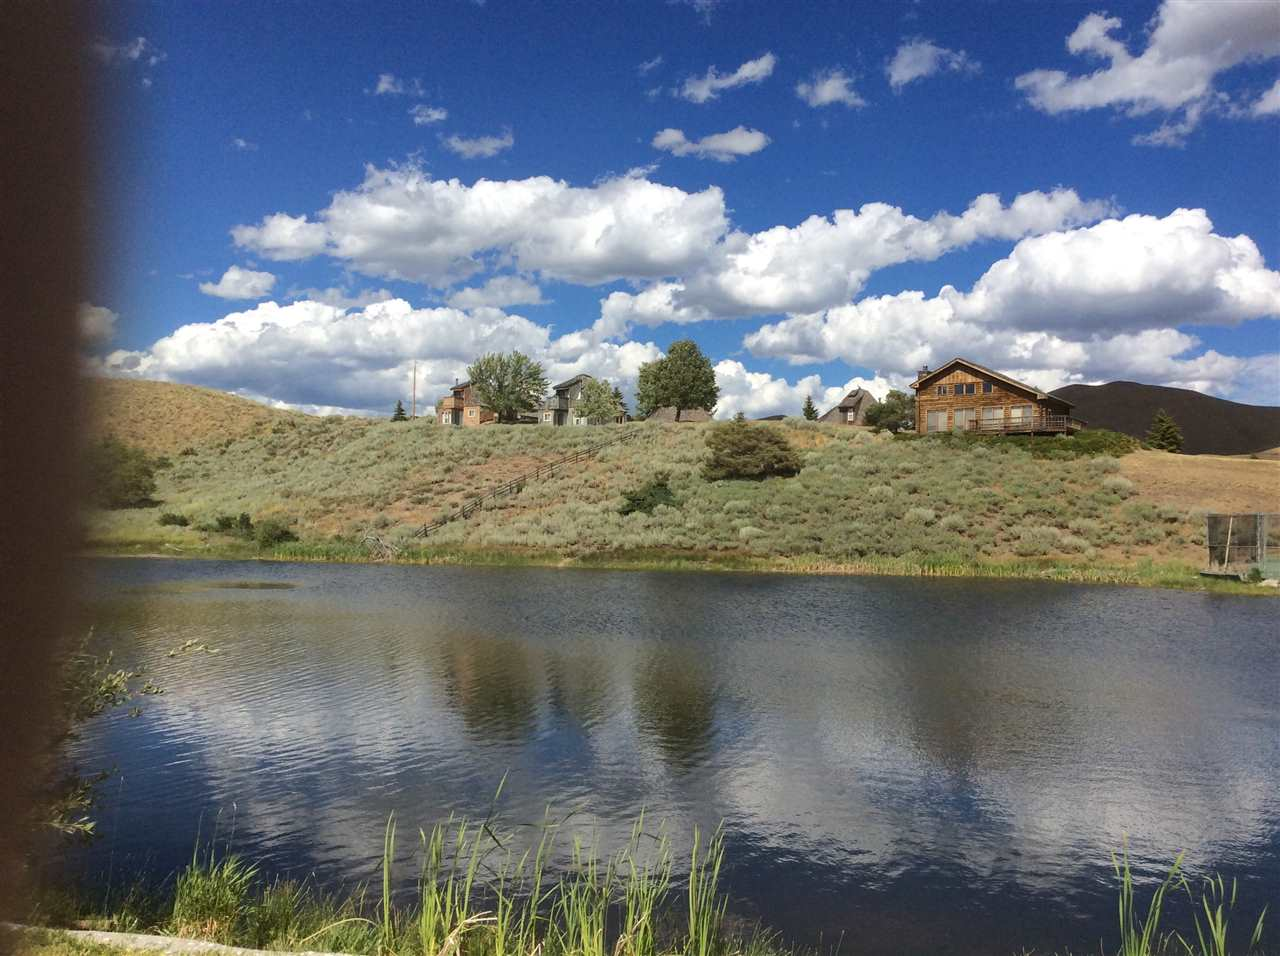 Farm for Sale at 550 W 500 N Soldier Mtn Ranch & Resort 550 W 500 N Soldier Mtn Ranch & Resort Fairfield, Idaho 83327